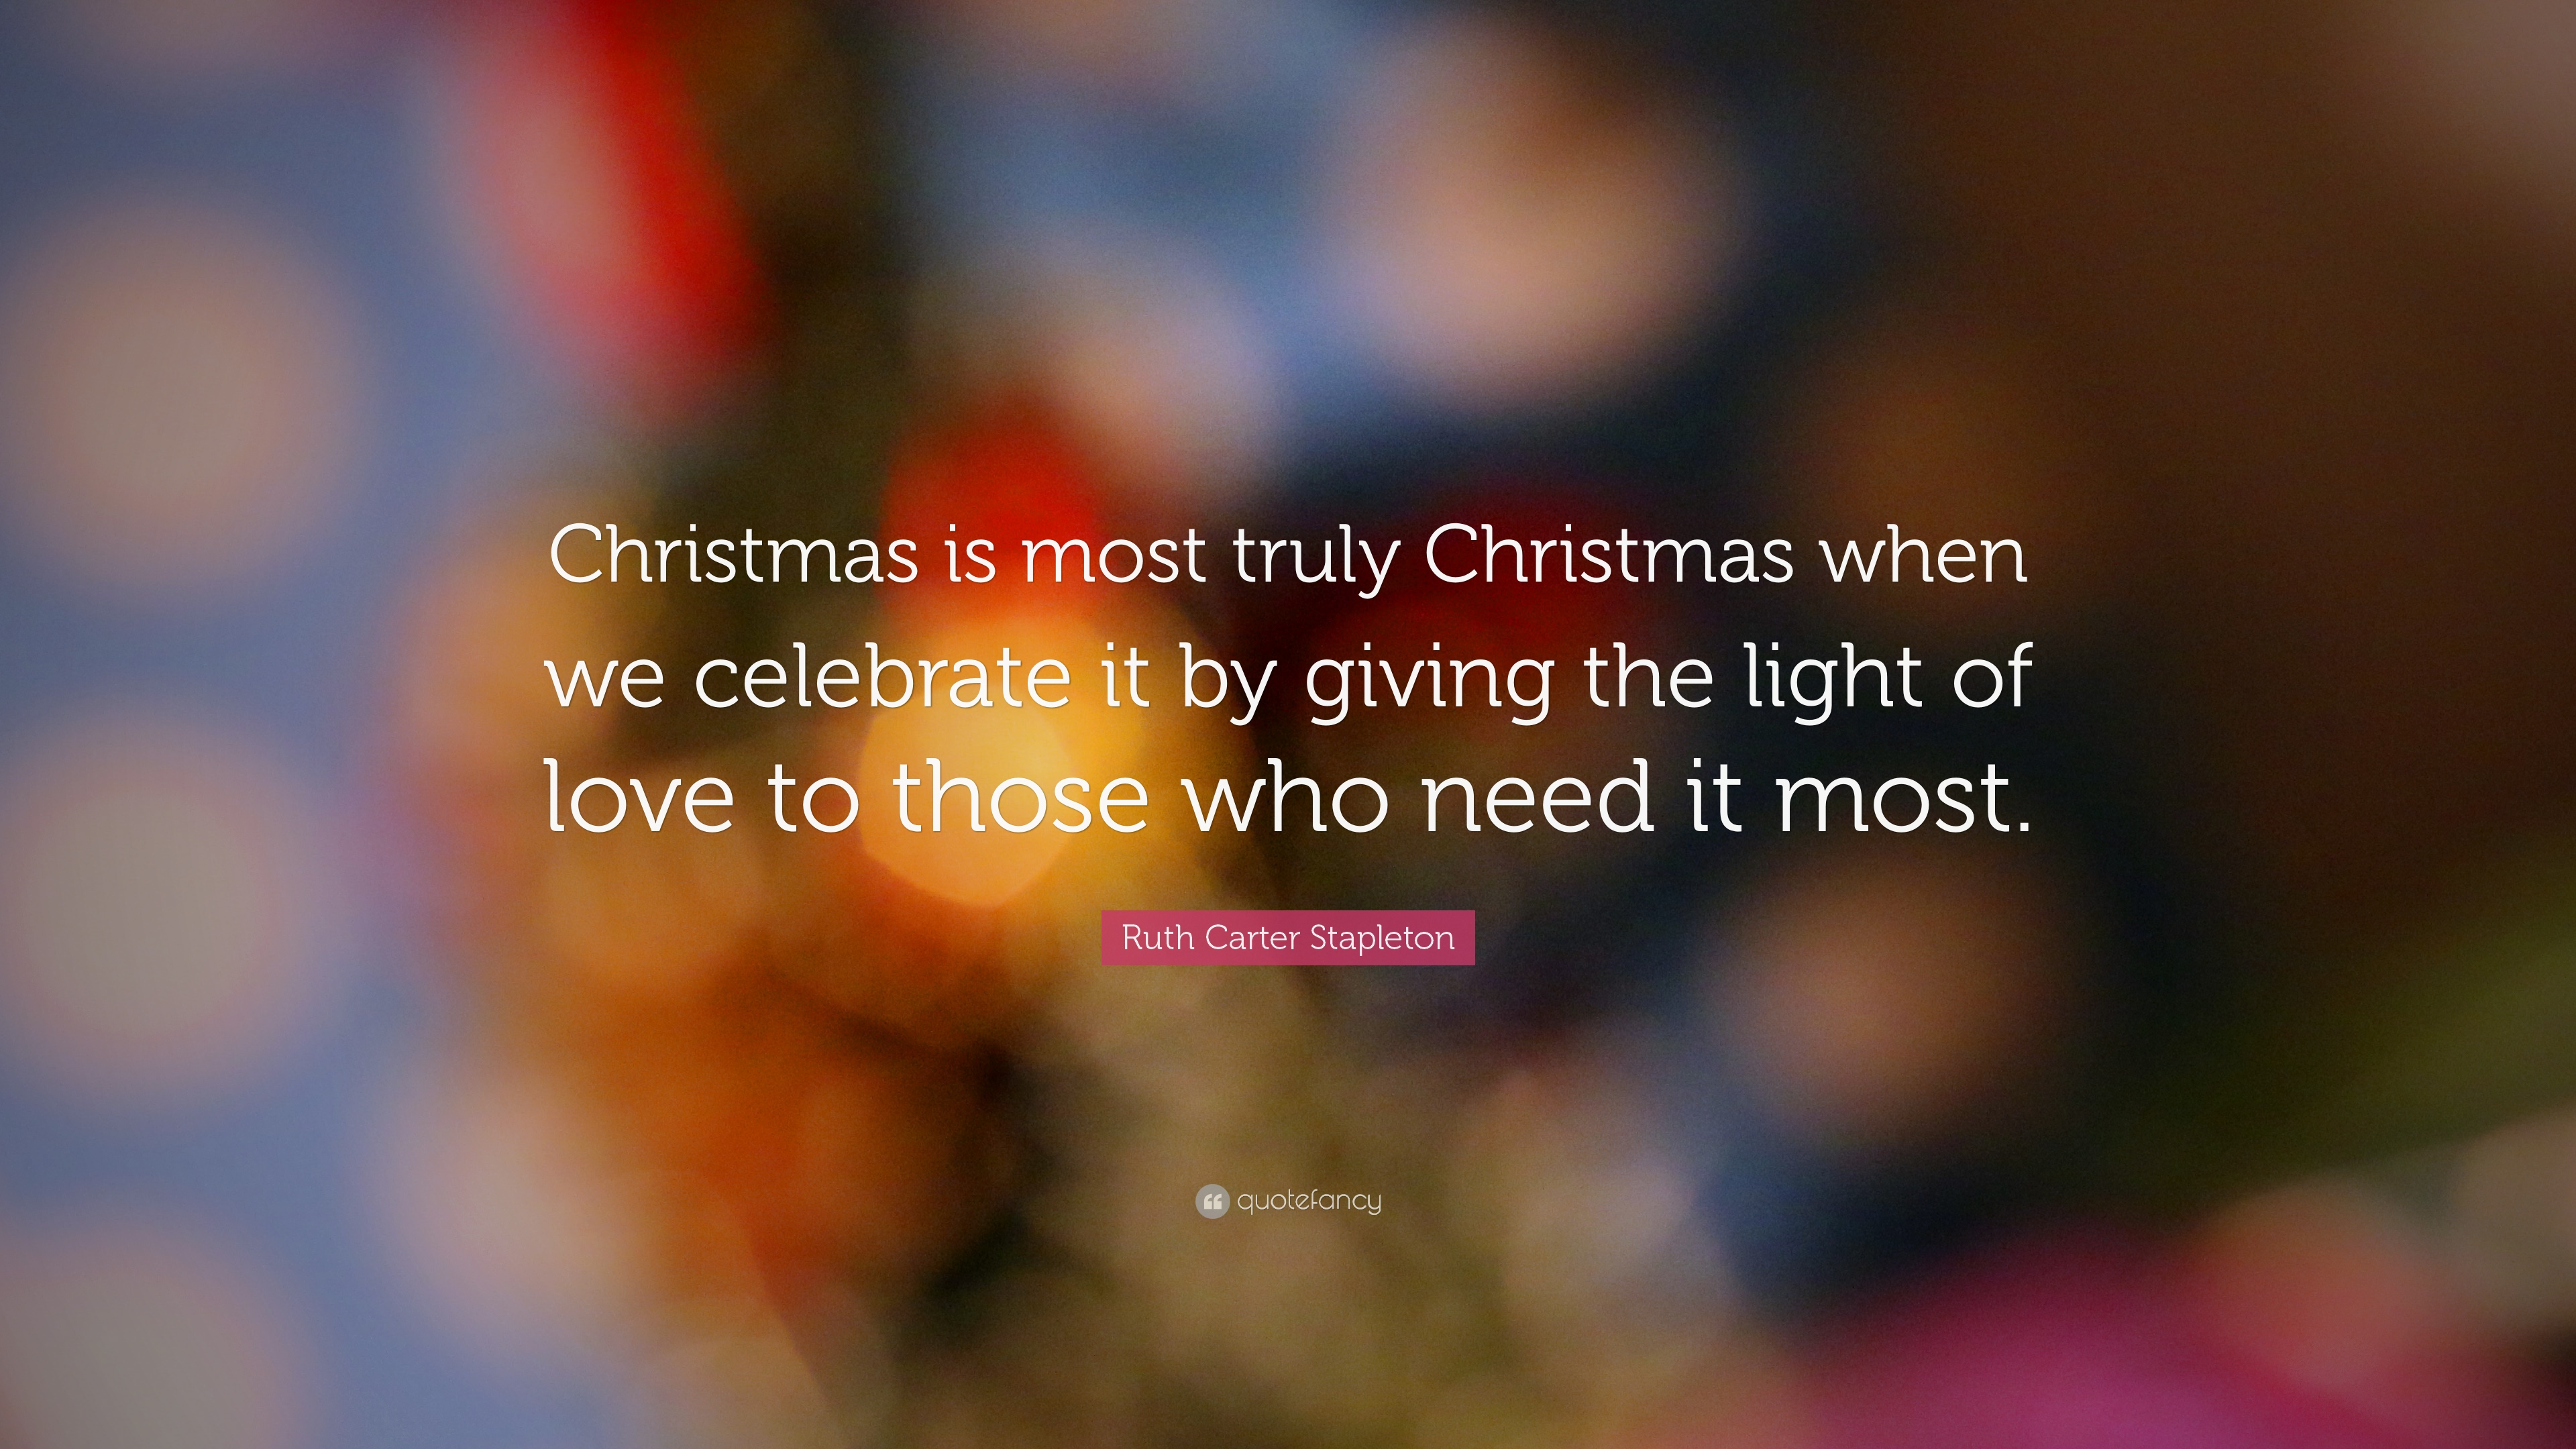 Attractive Ruth Carter Stapleton Quote: U201cChristmas Is Most Truly Christmas When We  Celebrate It By